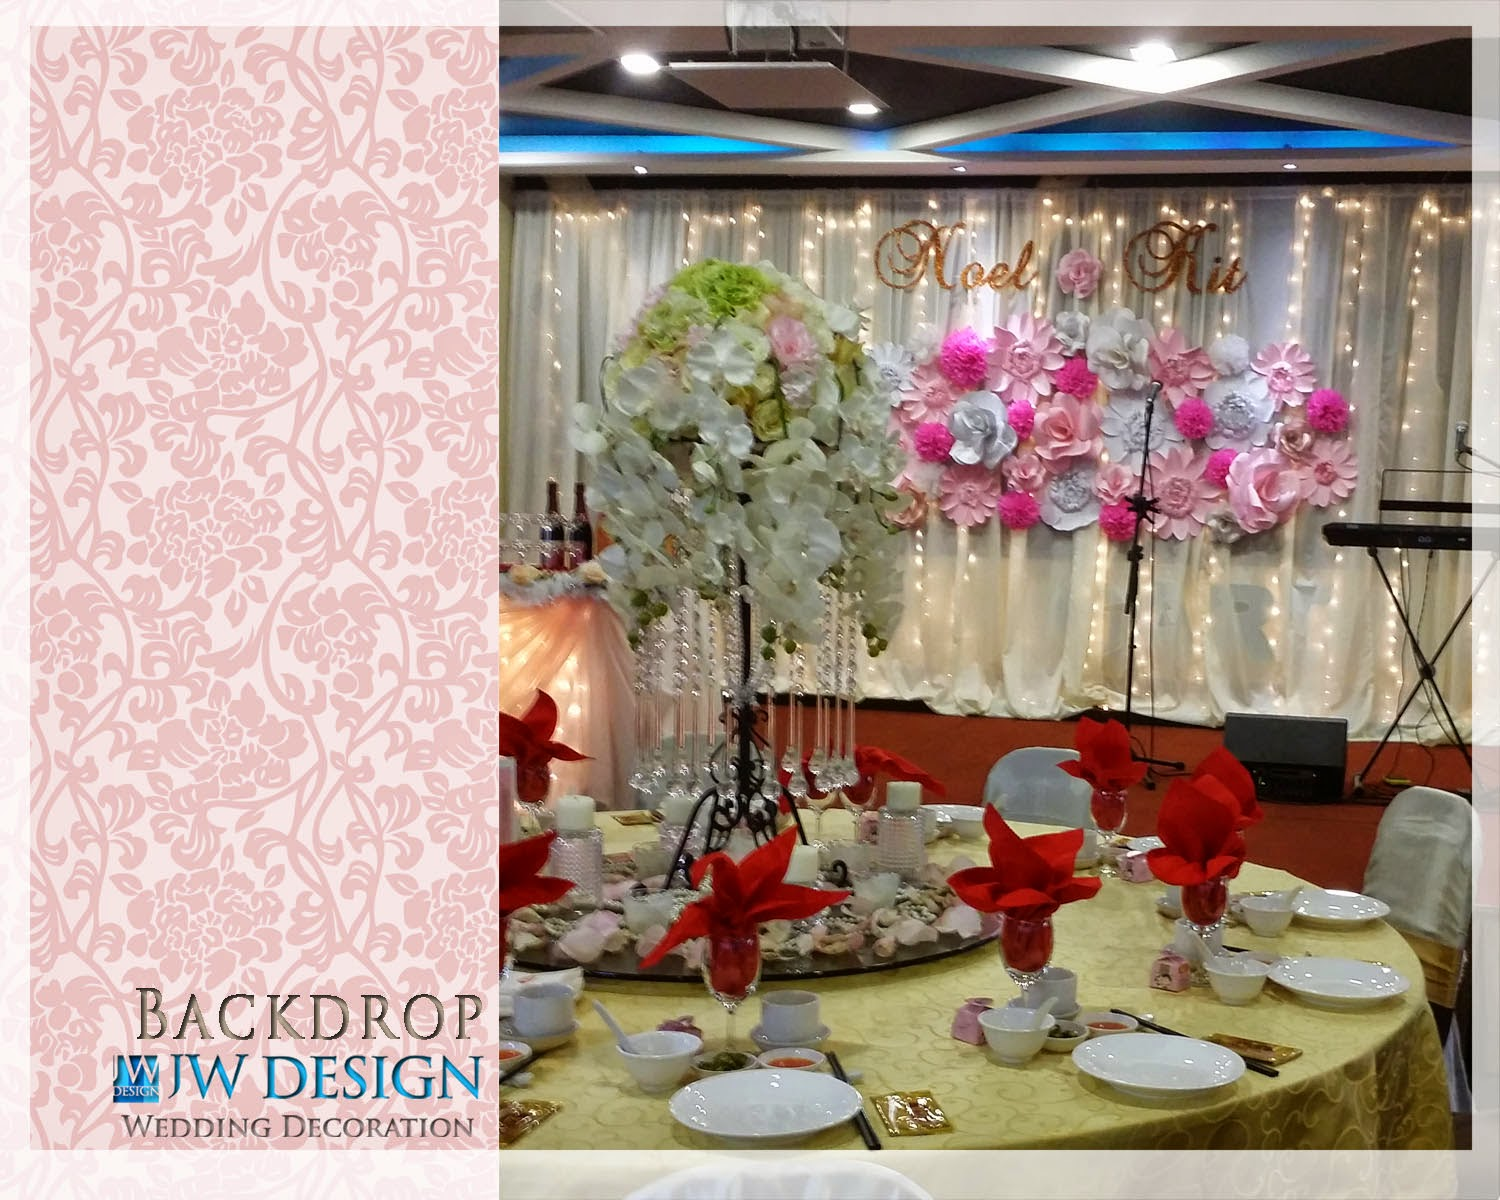 Jw design wedding decoration kit noels wedding klang v garden junglespirit Gallery